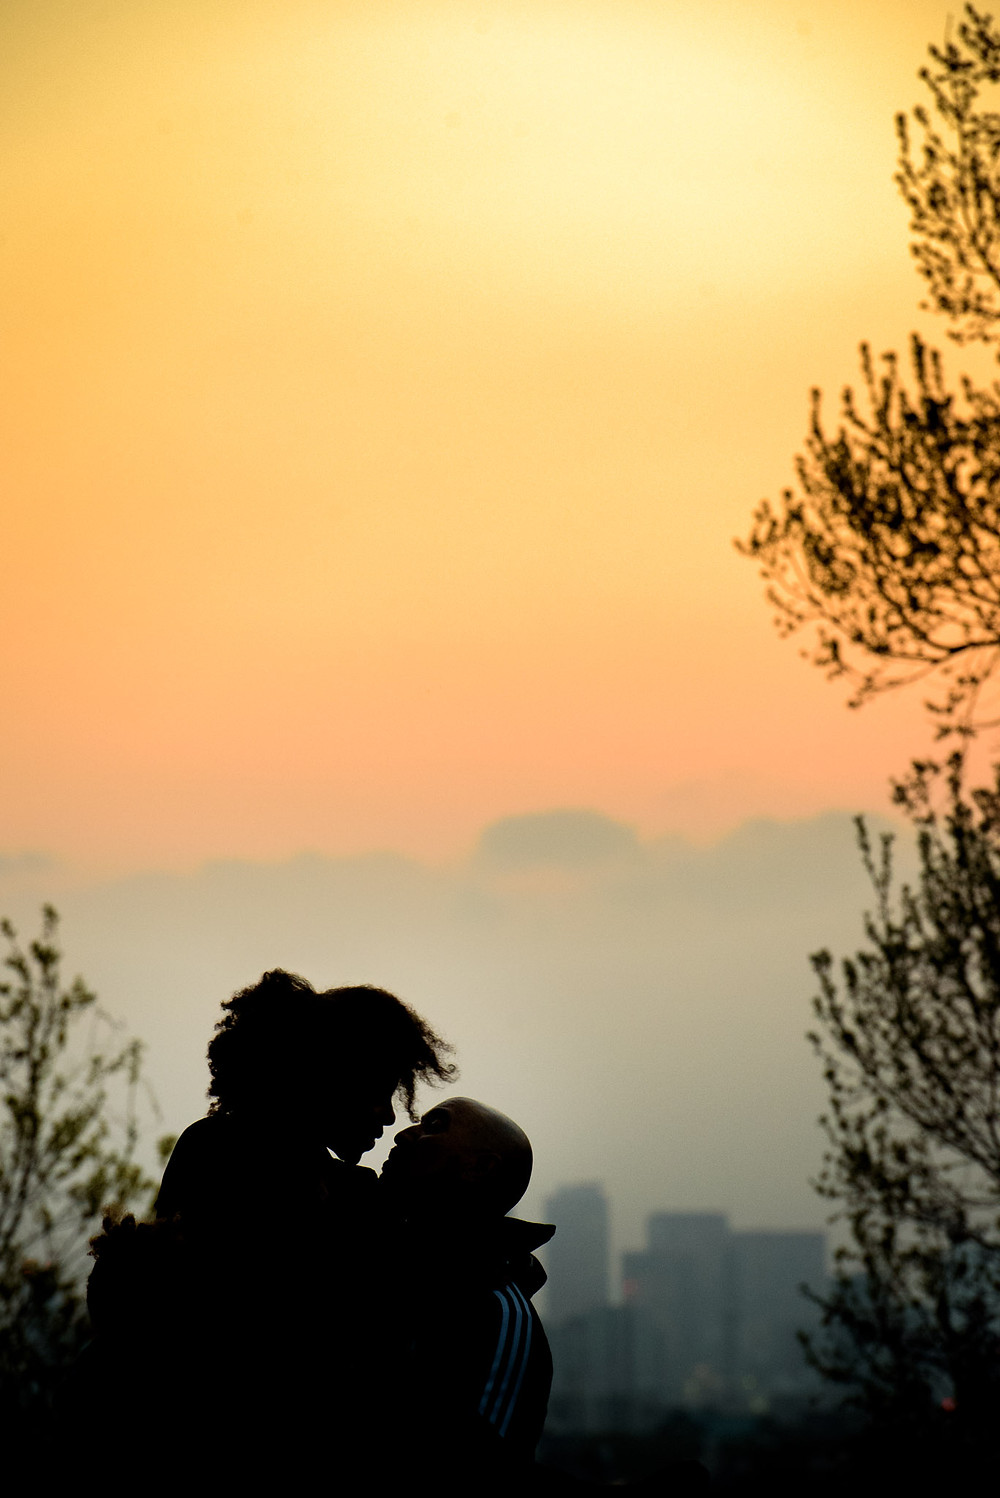 sunset kiss between mom and dad